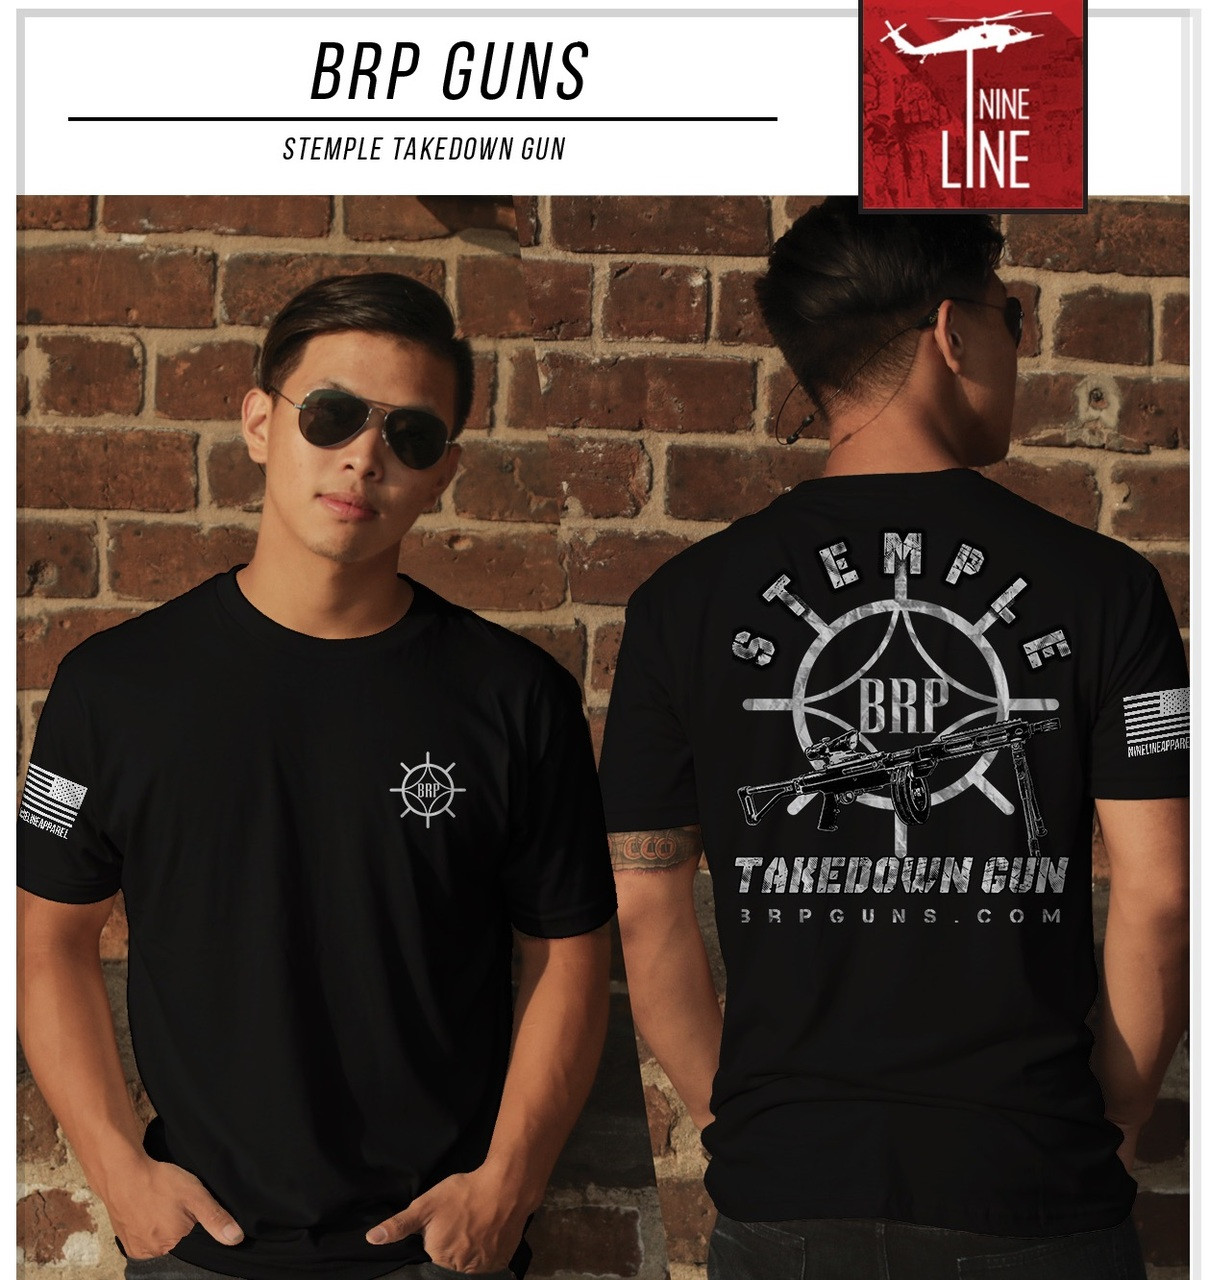 BRP STG T Shirt by Nine Line